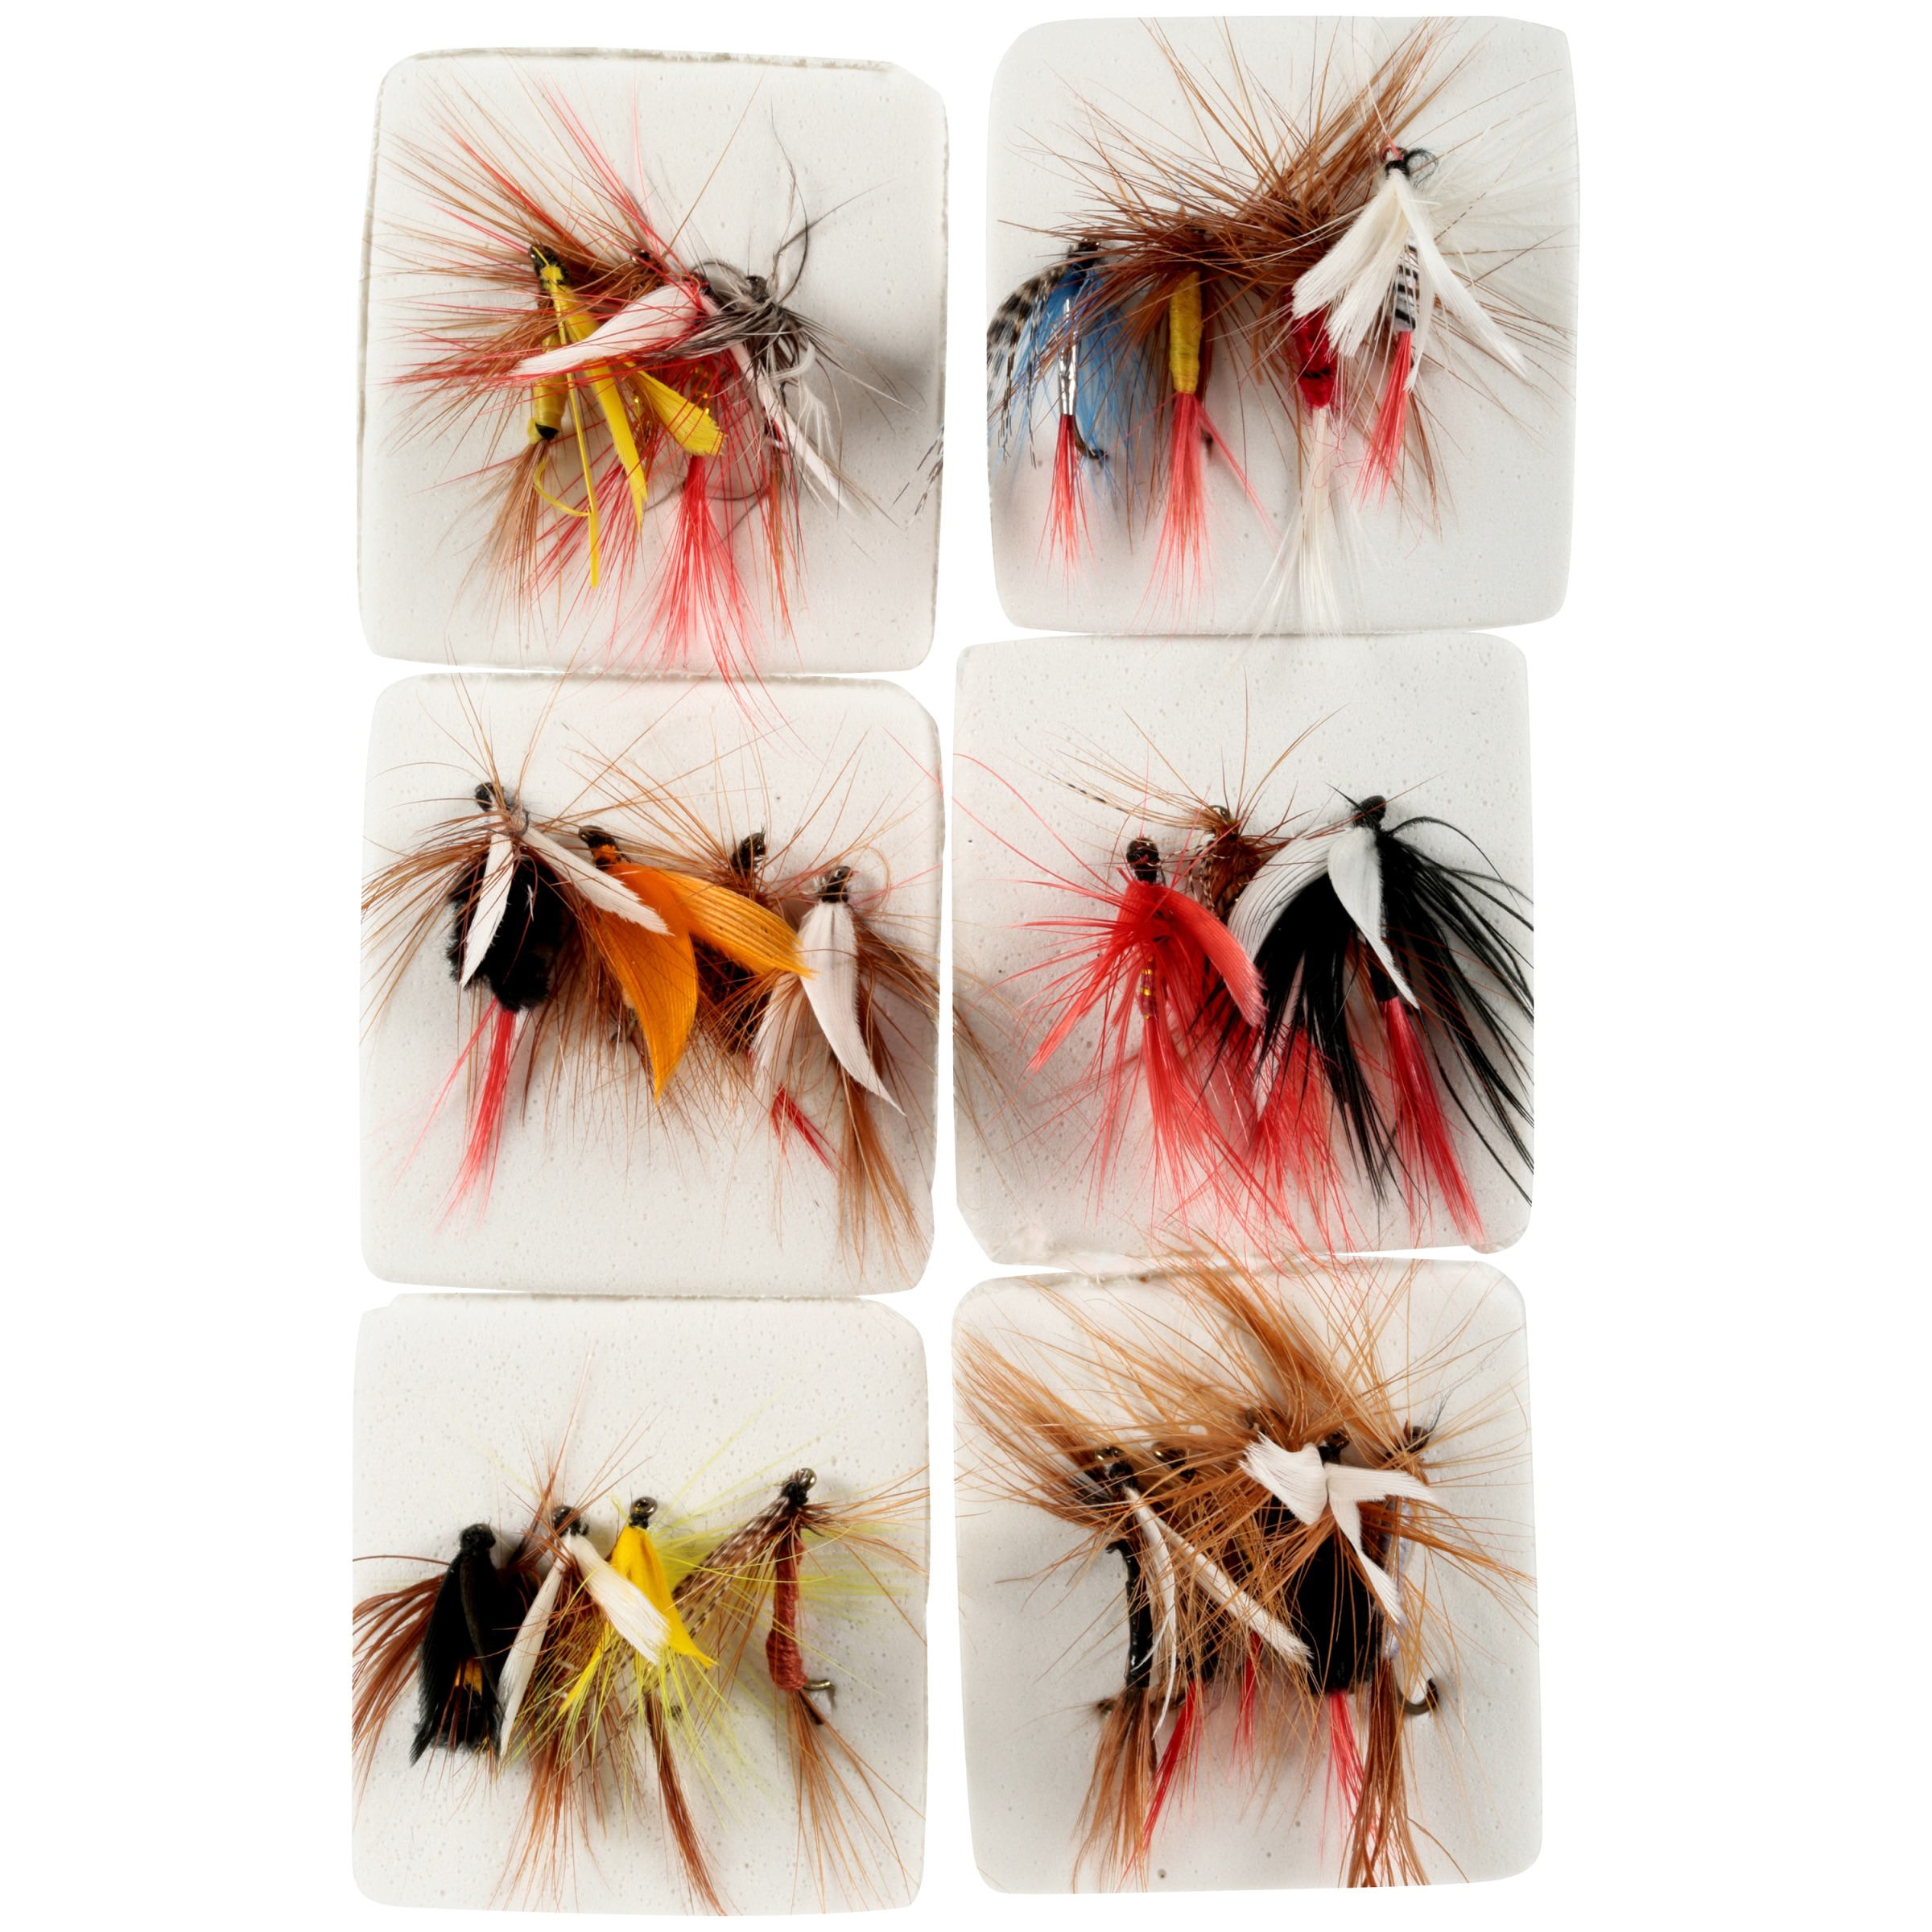 Southbend® Fly Kit 25 pc Pack